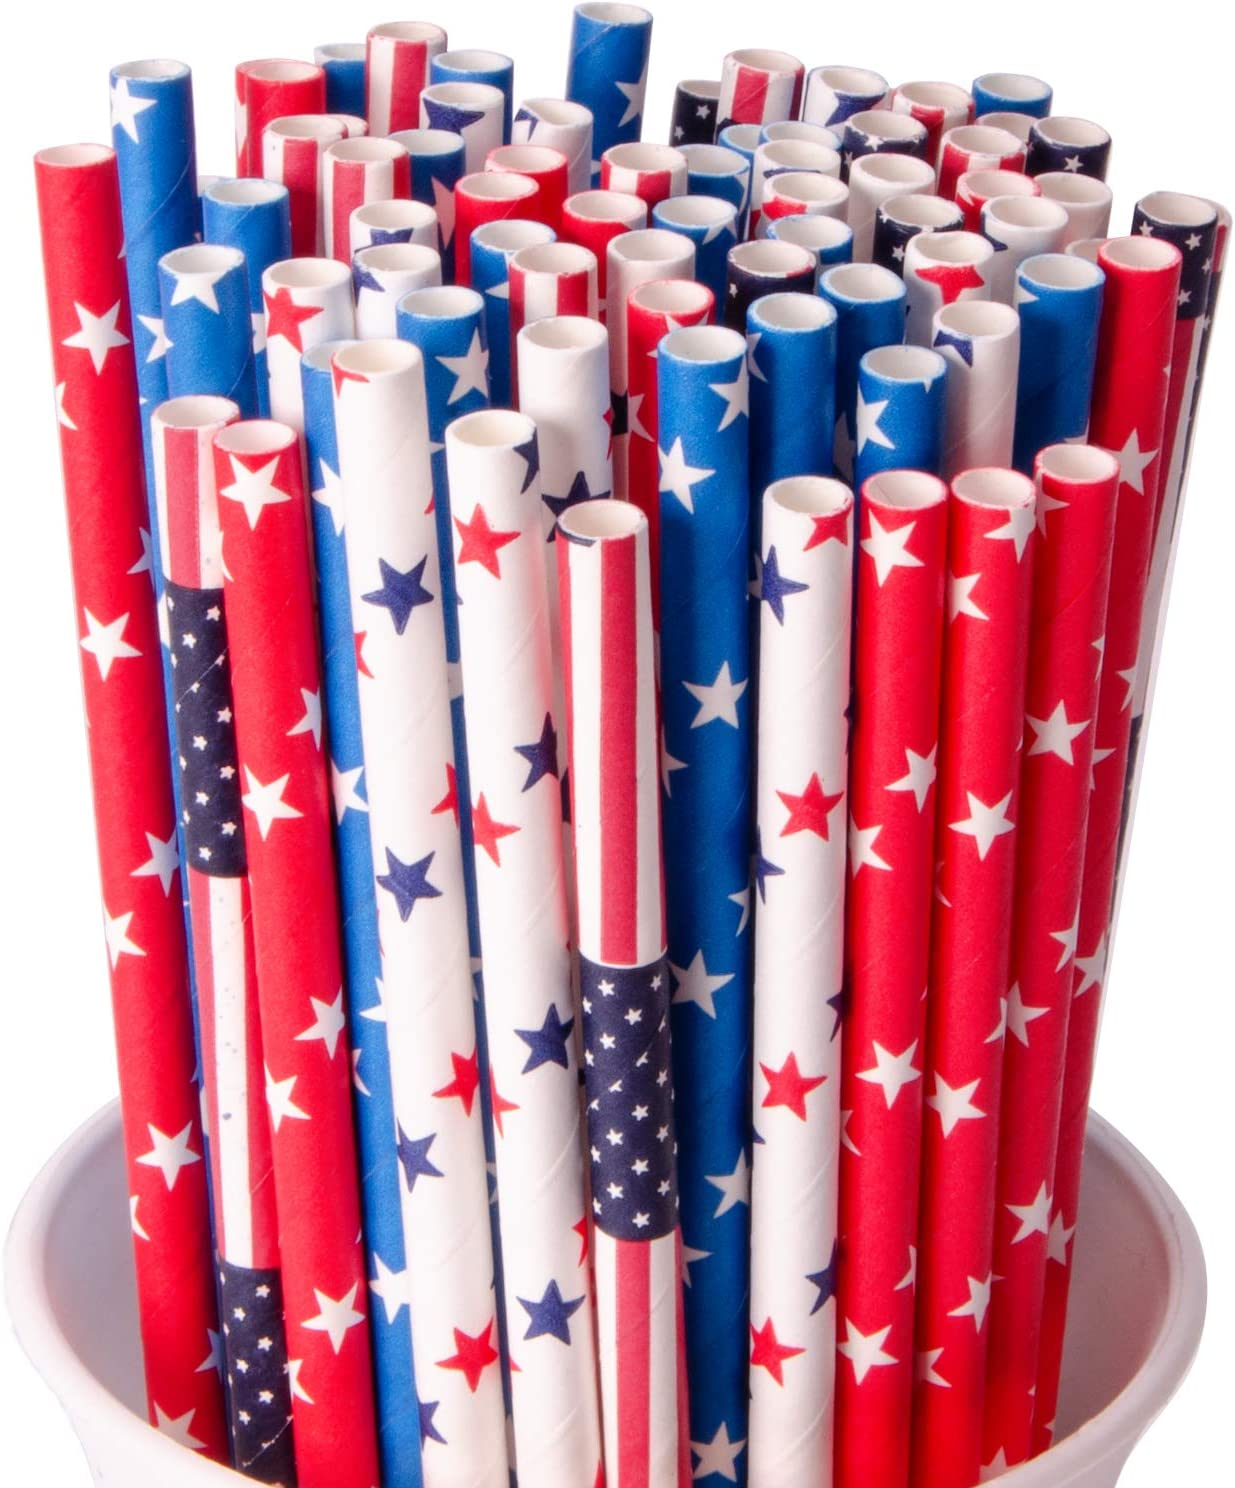 Wehhbtye 200PCS Independence Day Paper Straw - 4th of July Biodegradable Star Stripe Drinking Straw for Memorial Patriotic Day Party Celebration Supply(Red White Blue)